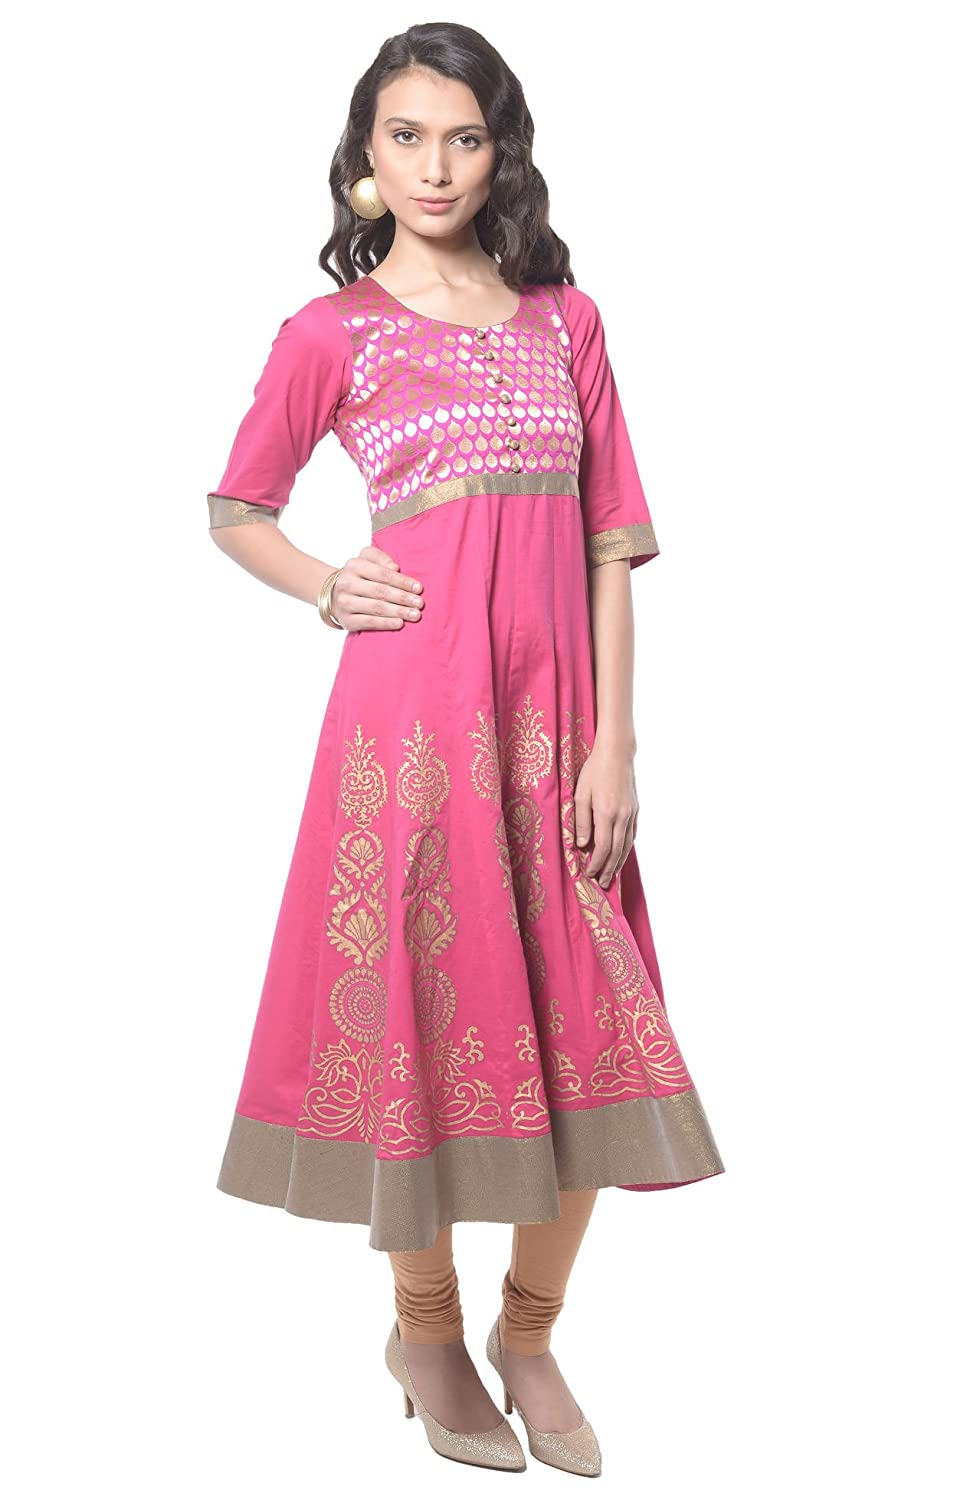 e6842c8a1 MBE Women s Cotton Kurti (B337 Hot Pink 40)  Amazon.in  Clothing    Accessories